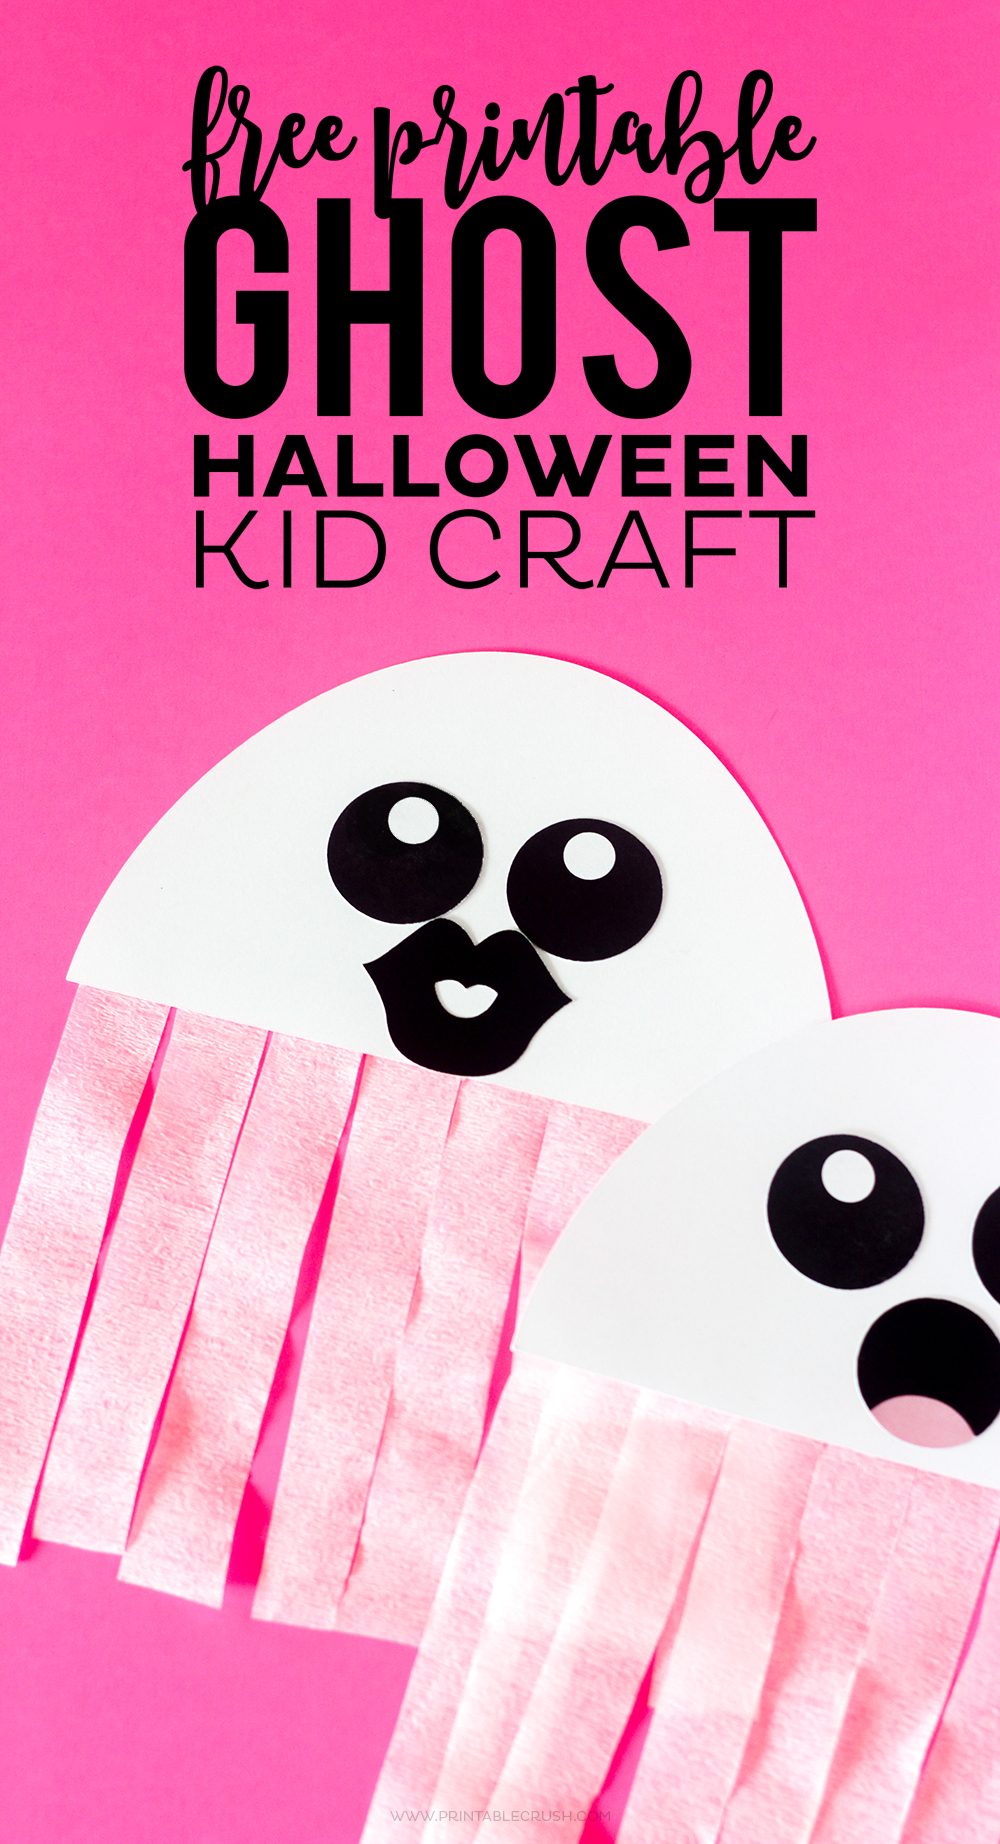 This is a picture of Sweet Printable Crafts for Preschoolers